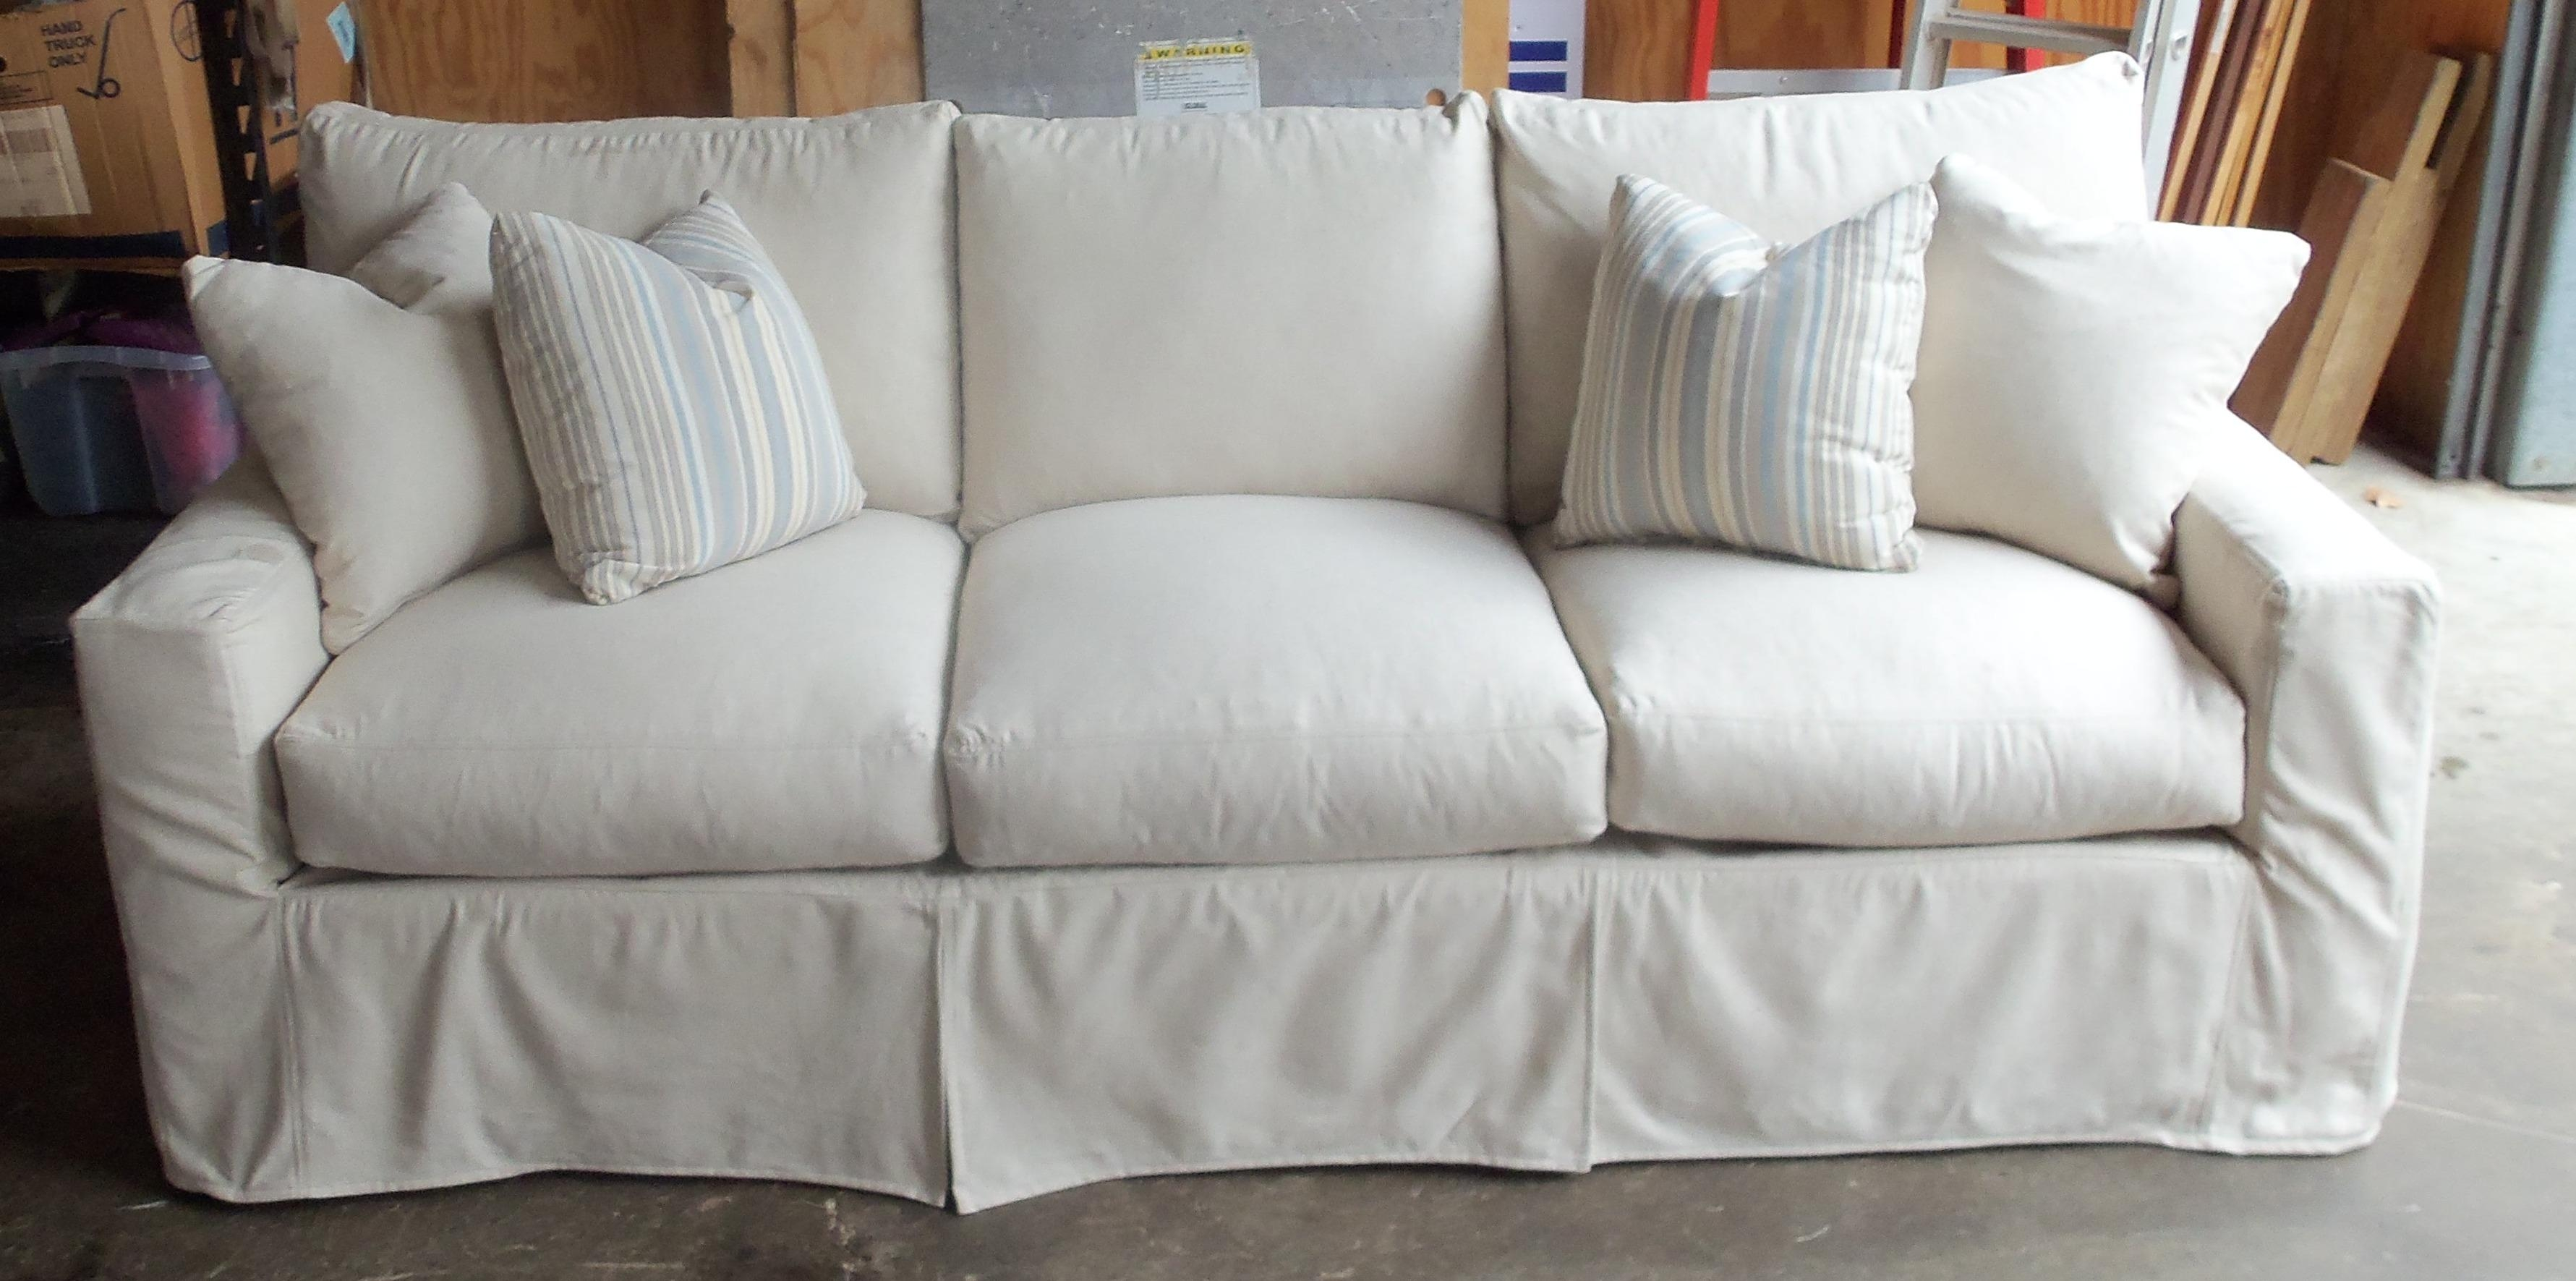 Furniture: Classy Ikea Couch Covers Design For Stylish Living Room Within Slipcovers For Sofas And Chairs (View 6 of 20)